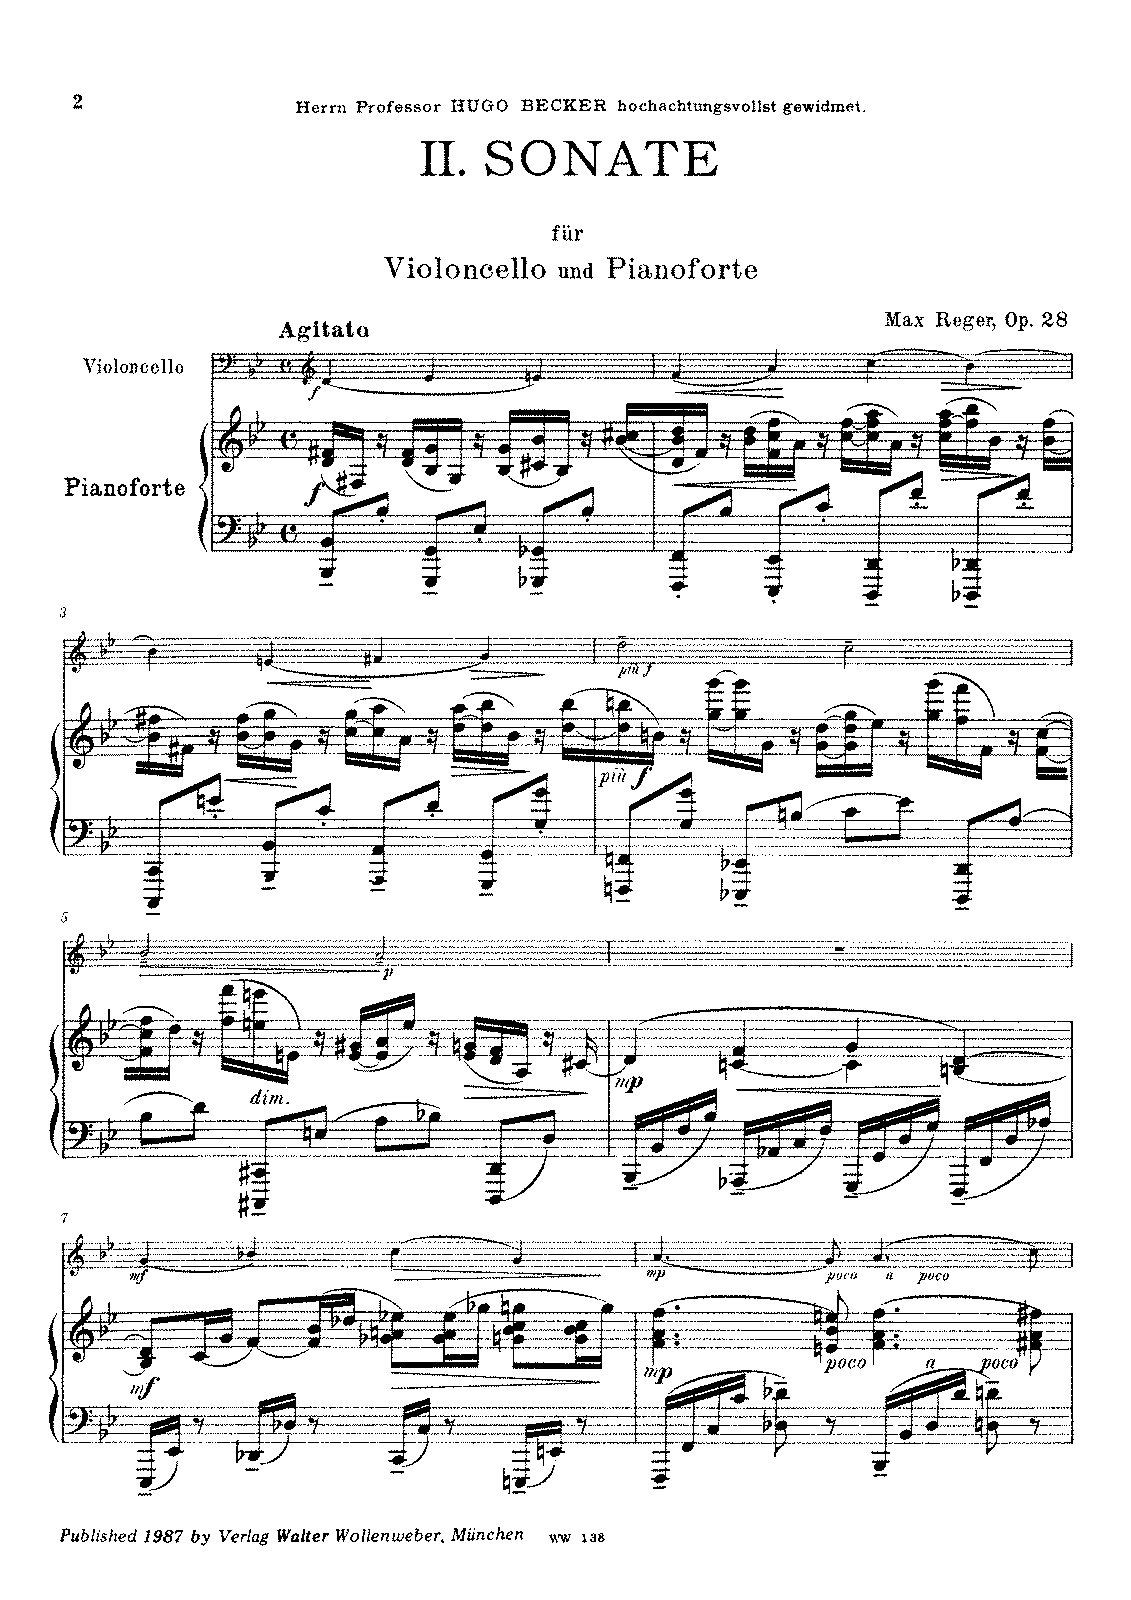 PMLP57578-Reger op.028 Cello Sonata No.2 WW.pdf